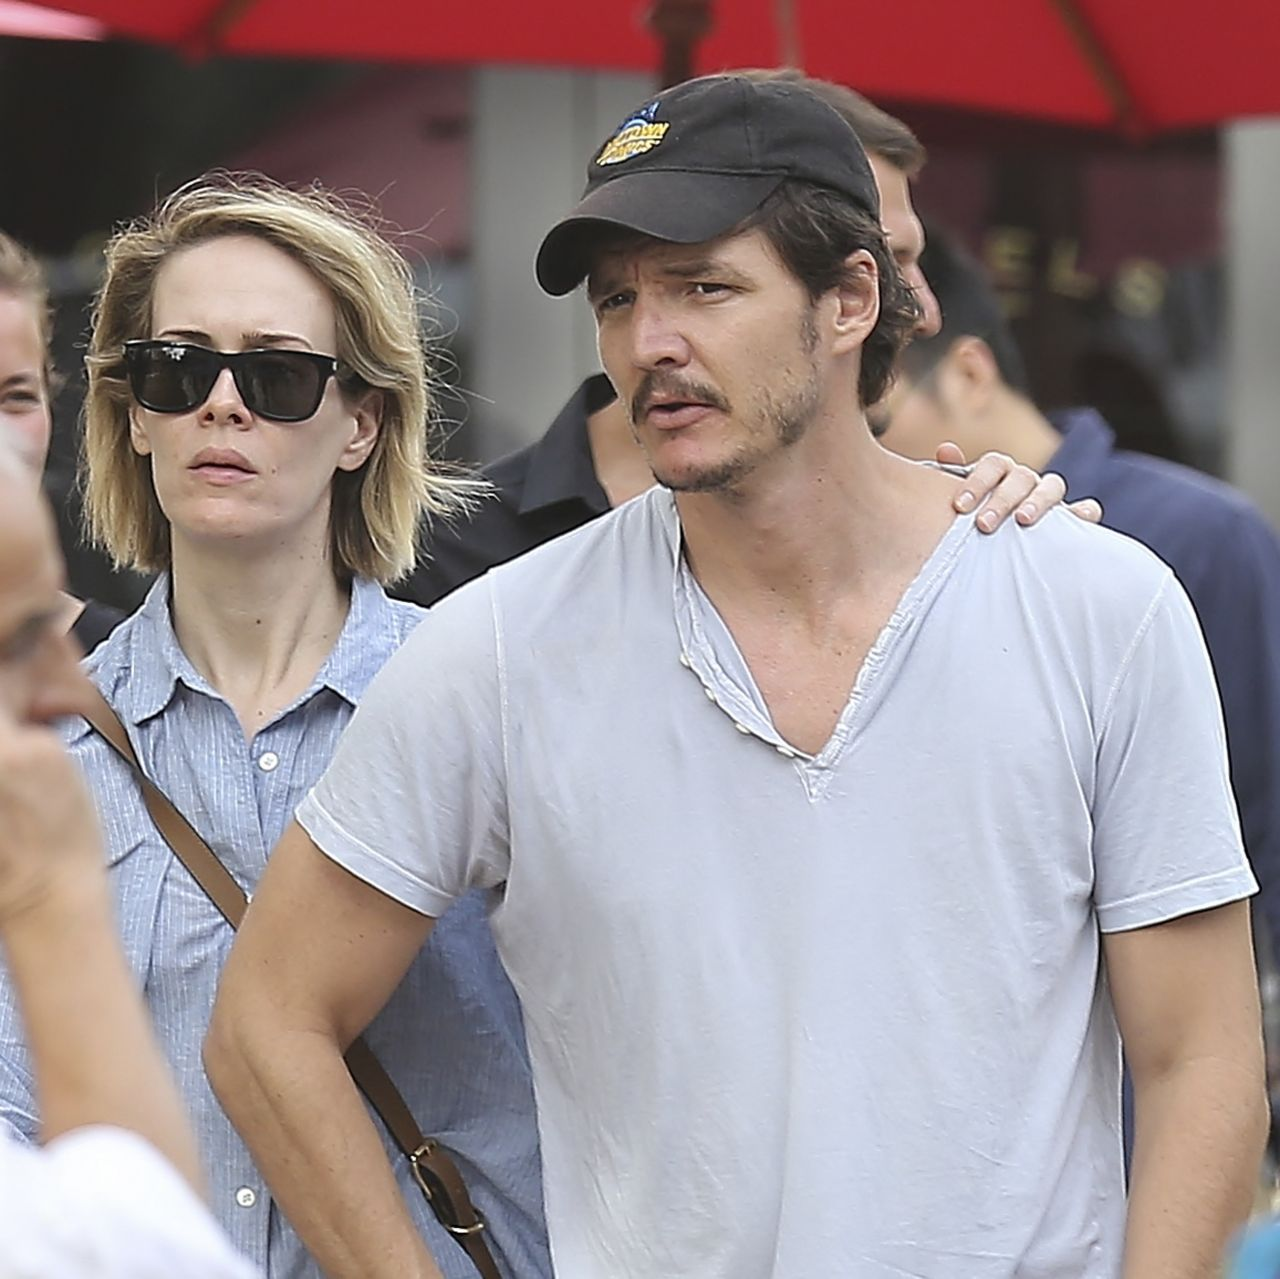 Sarah Paulson and Boyfriend Actor Pedro Pascal - Out in